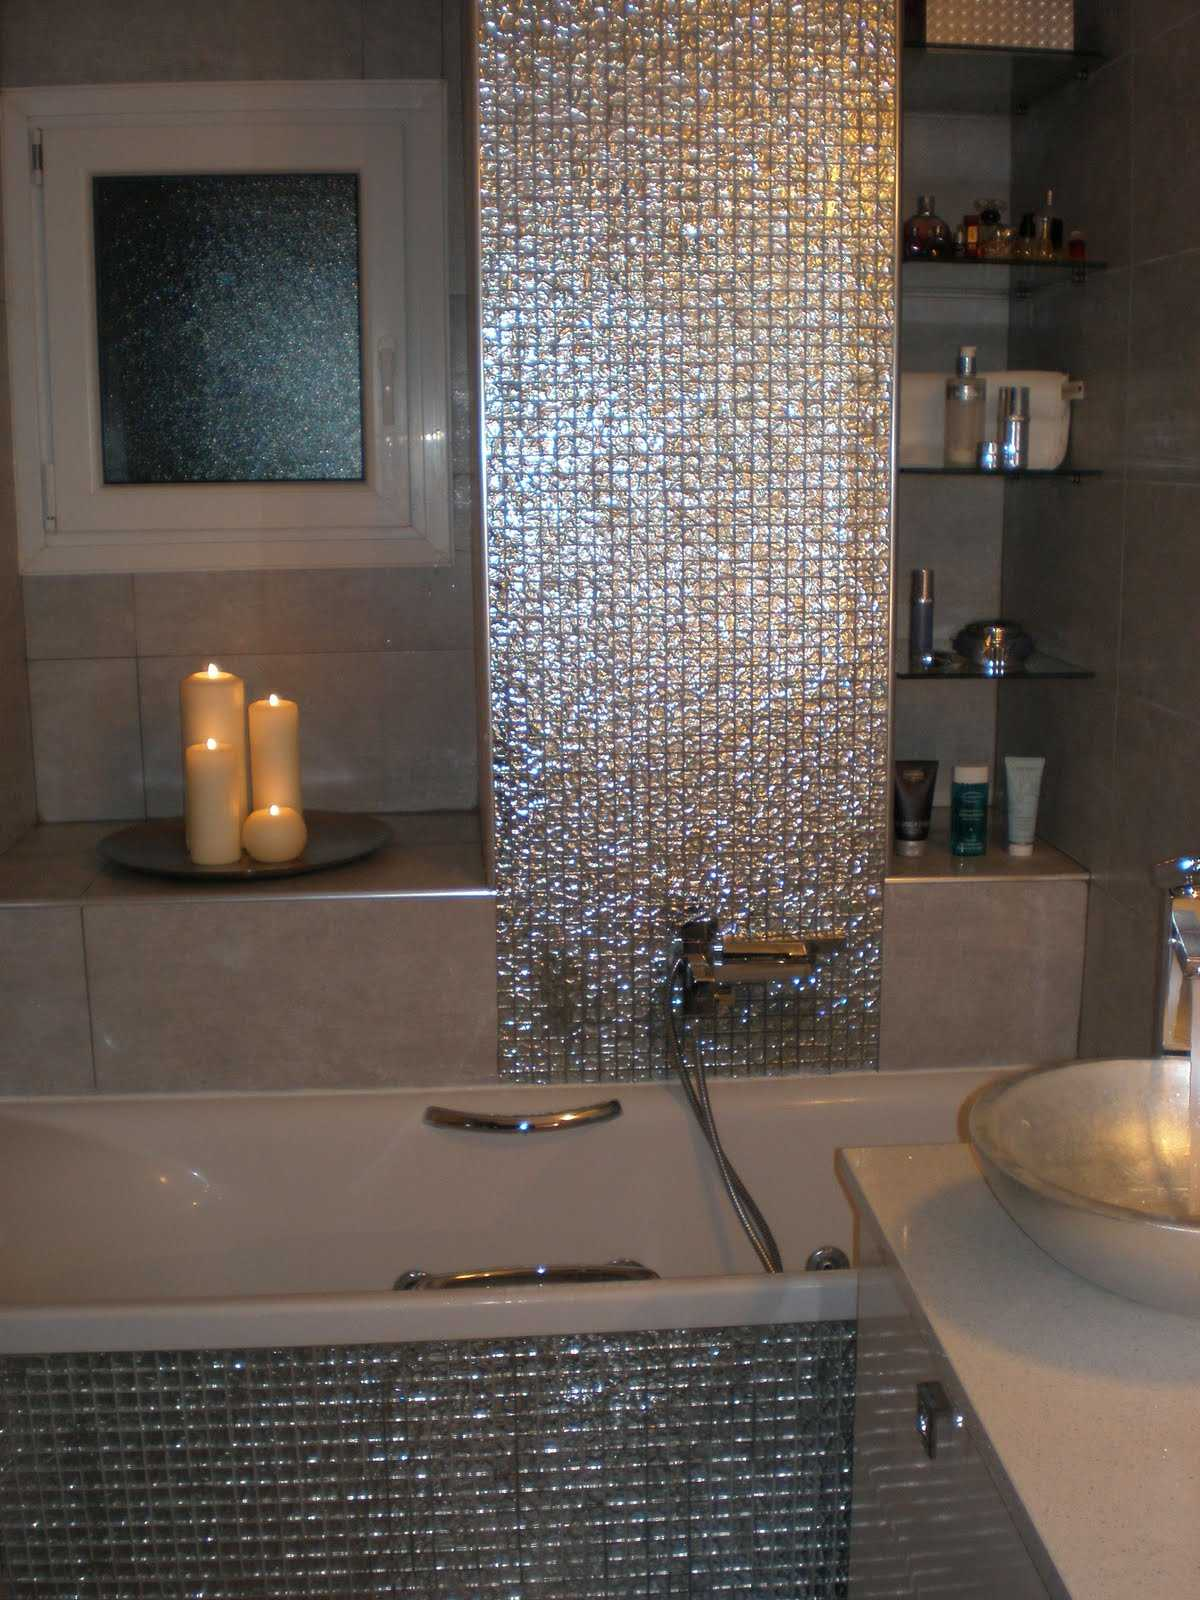 Silver Glitter Sparkling Square Mosaic Bathroom Wall Tiles Grand Taps